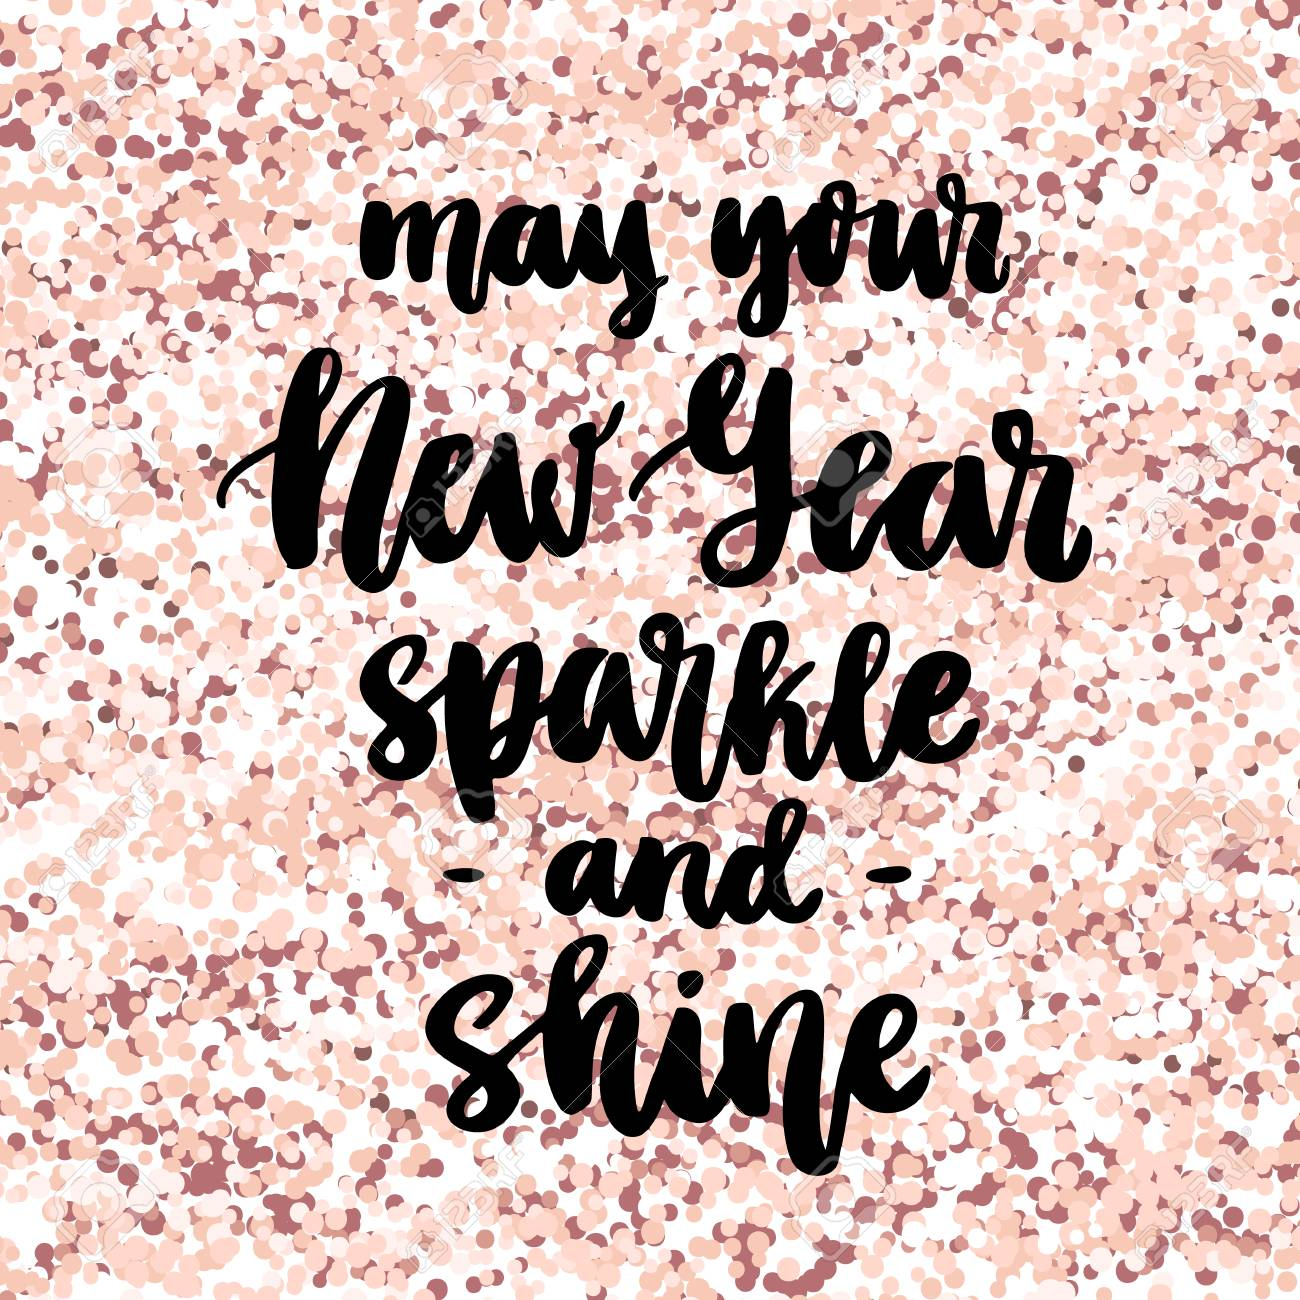 aeb30425146a The hand-drawing quote: May your New Year sparkle and shine. In a trendy  calligraphic style, on a pink gold glitter background. It can be used for  card, ...